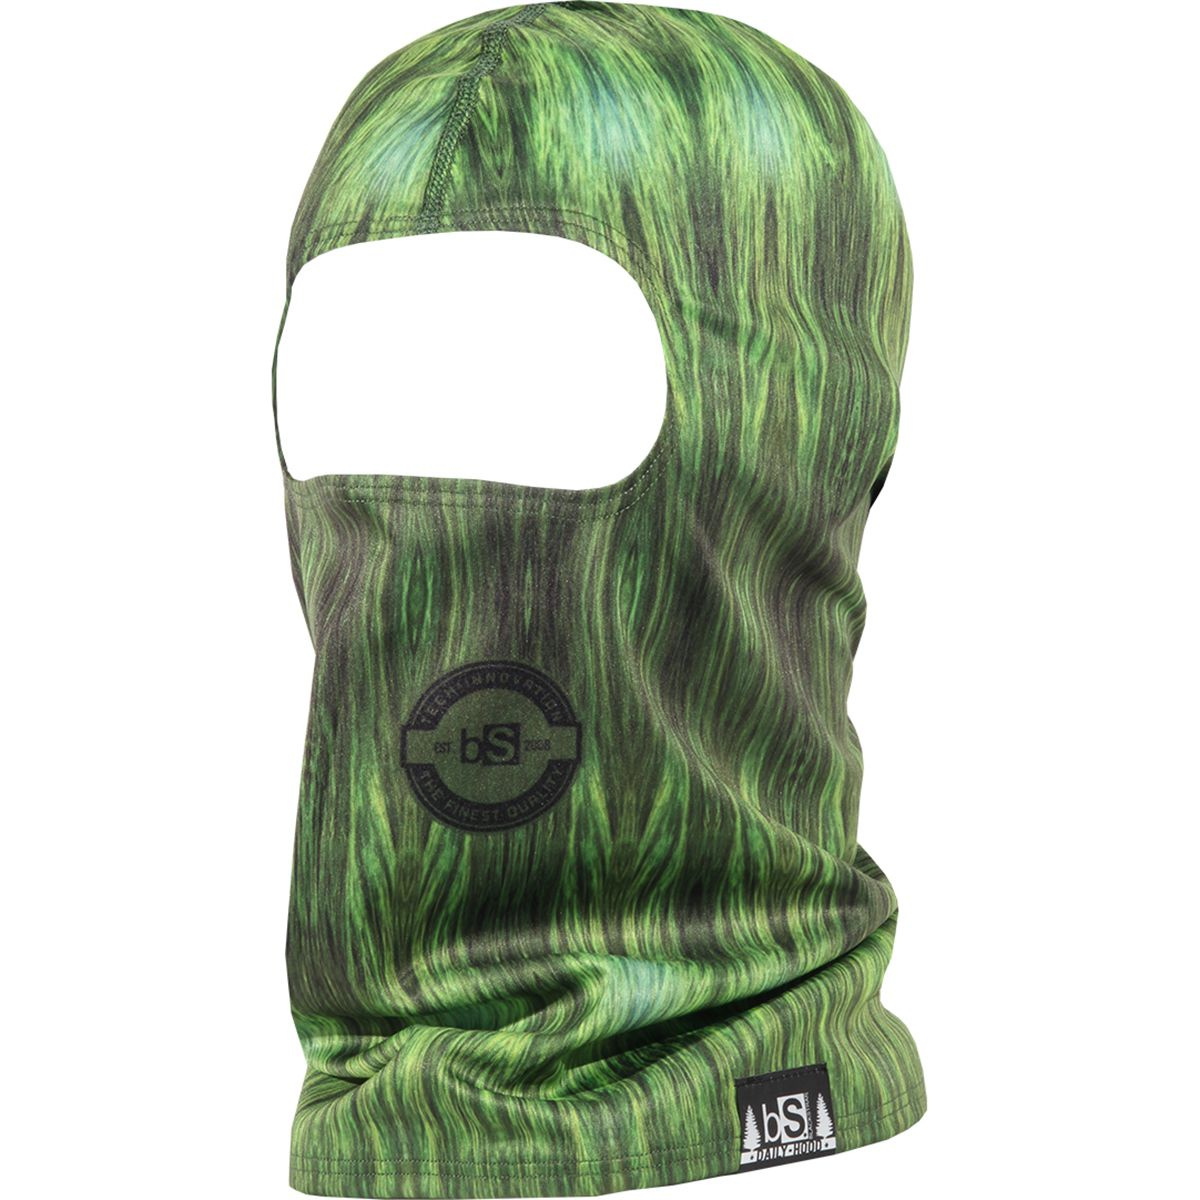 BlackStrap Daily Hood Green Moss One Size